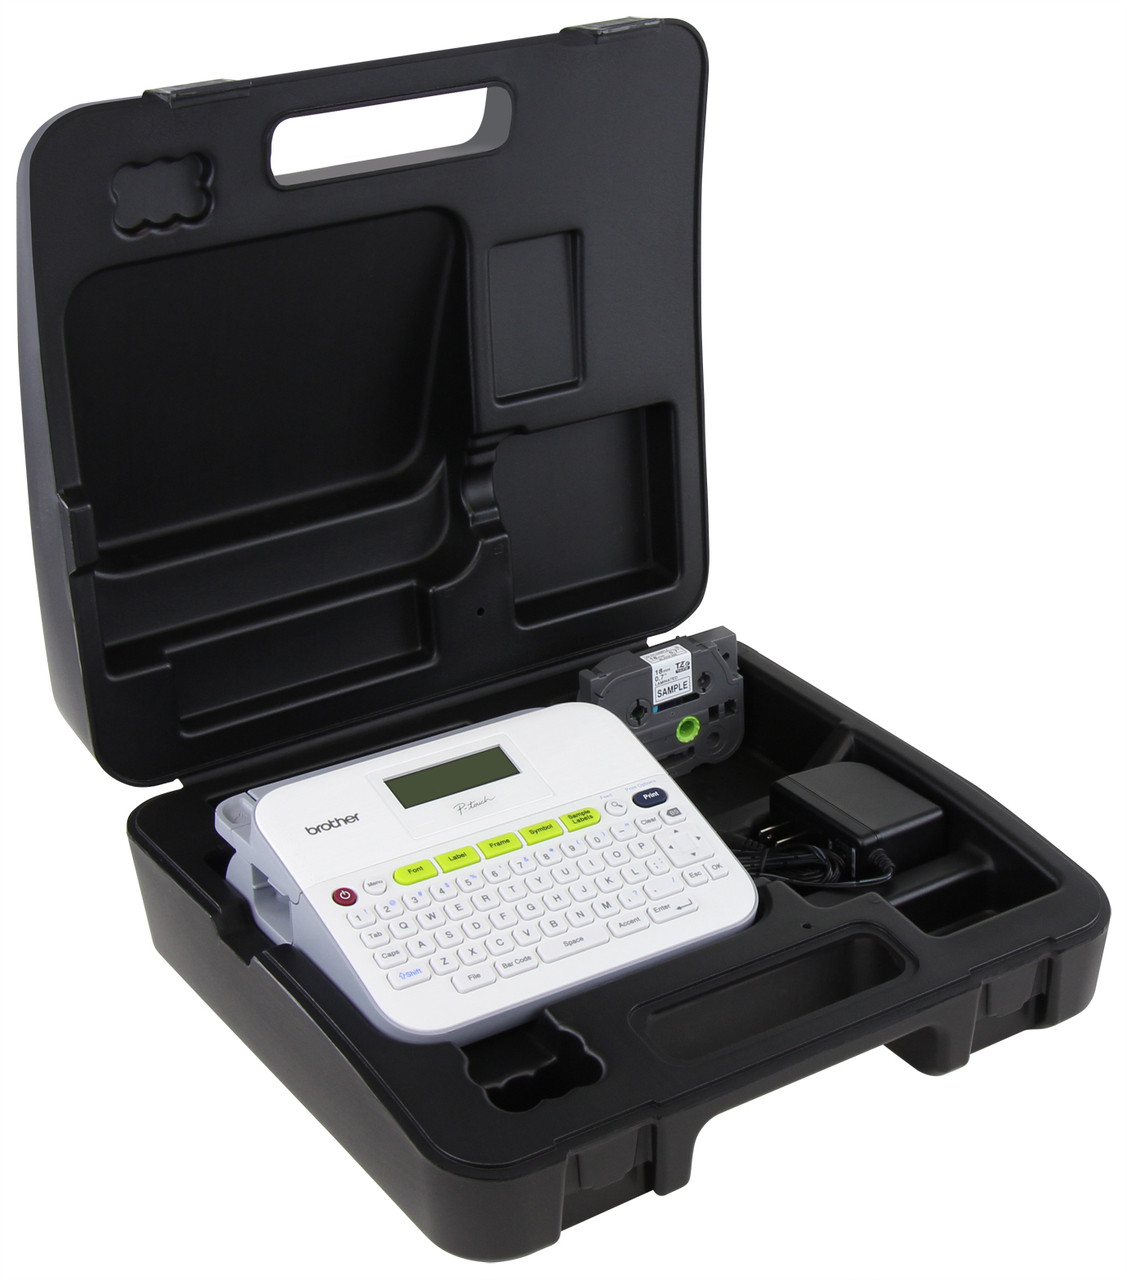 competitive price fdb8f 60389 Brother PT-D400VP Easy-to-Use Label Maker with AC Adapter & Case